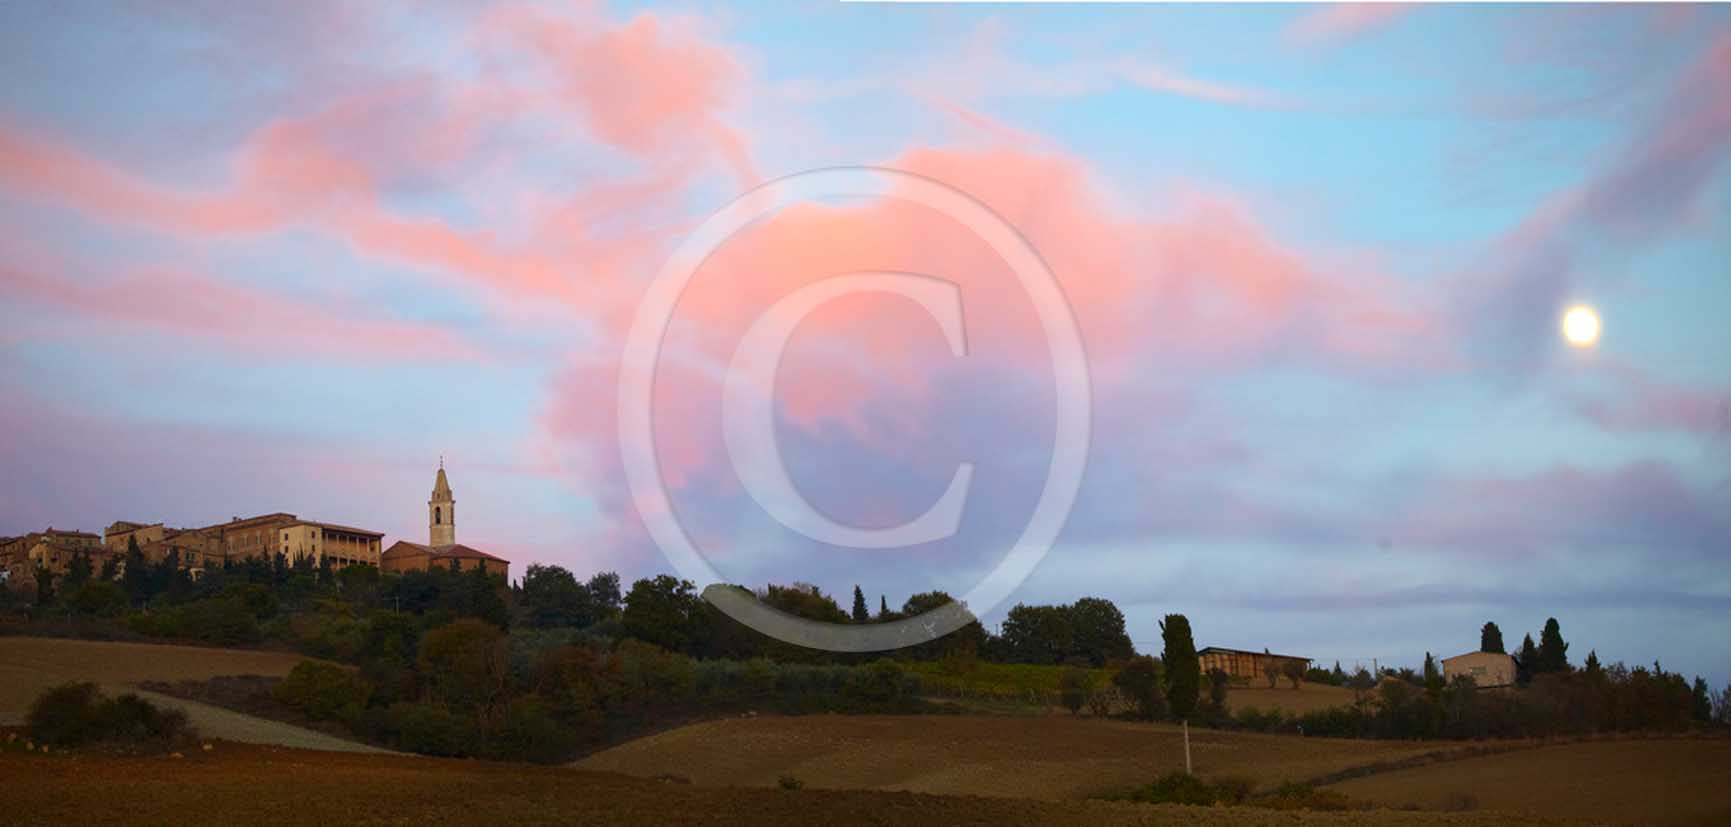 2011 - Panoramic view on sunset with moon and orange clouds of Pienza medieval village in Orcia valley.